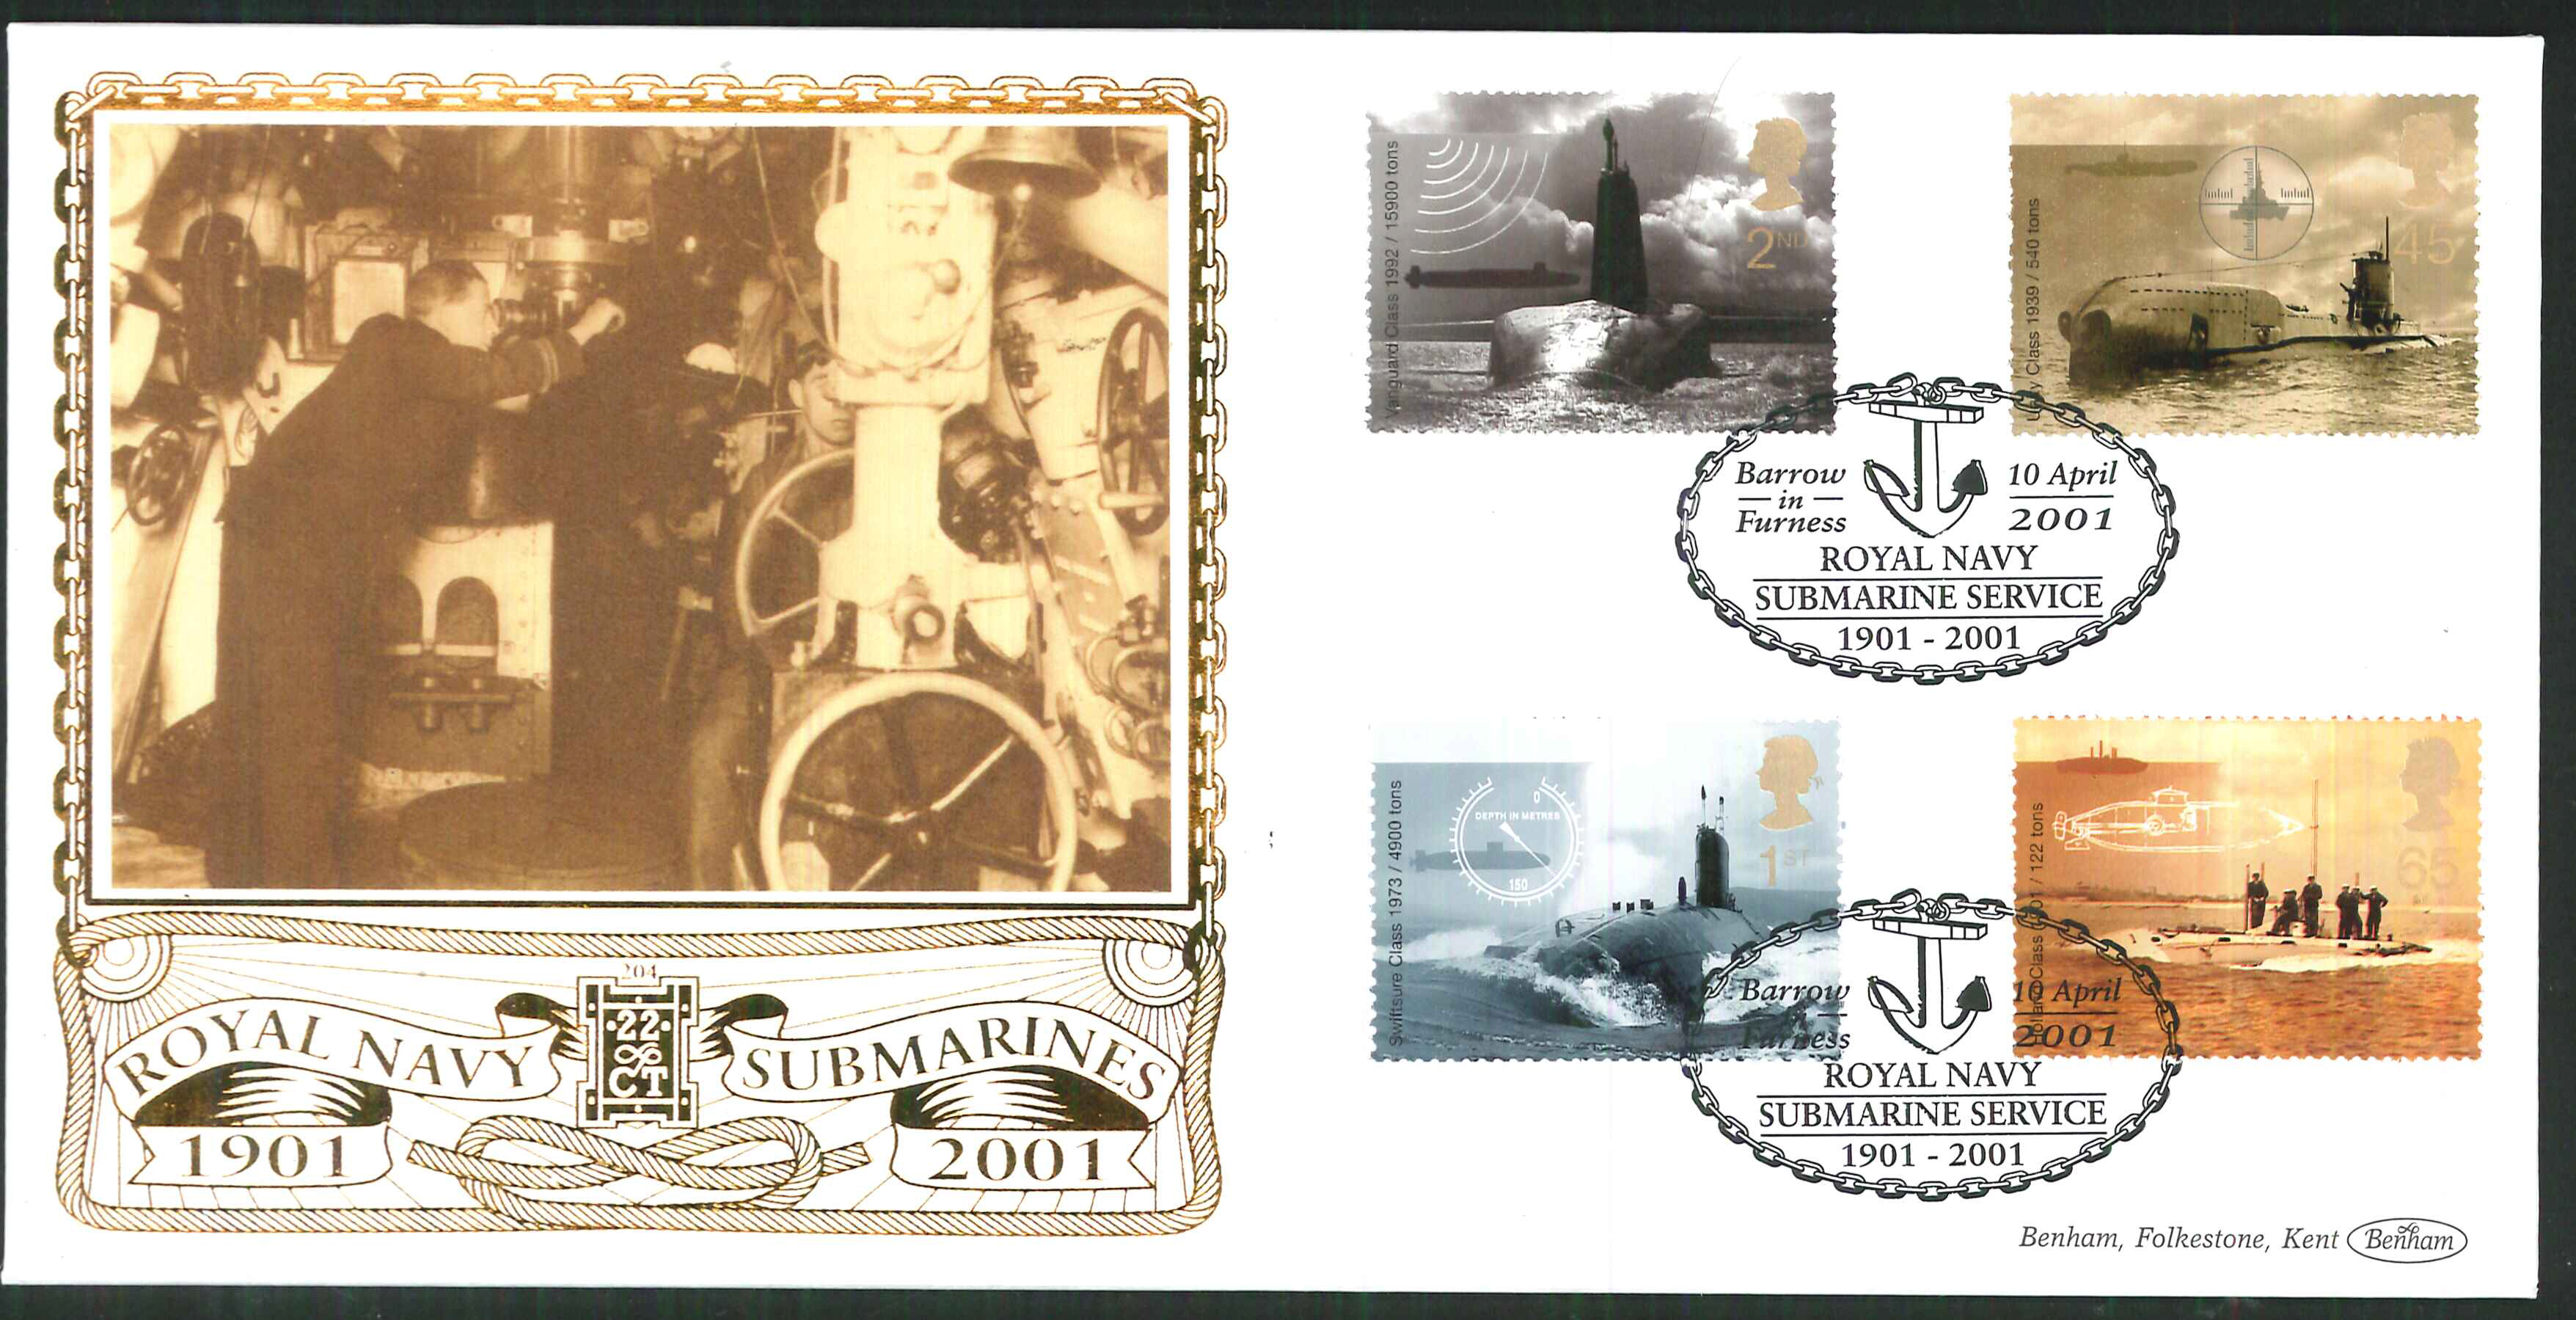 2001 - Submarines FDC Benham 22ct Gold 500- Submarine Service Postmark